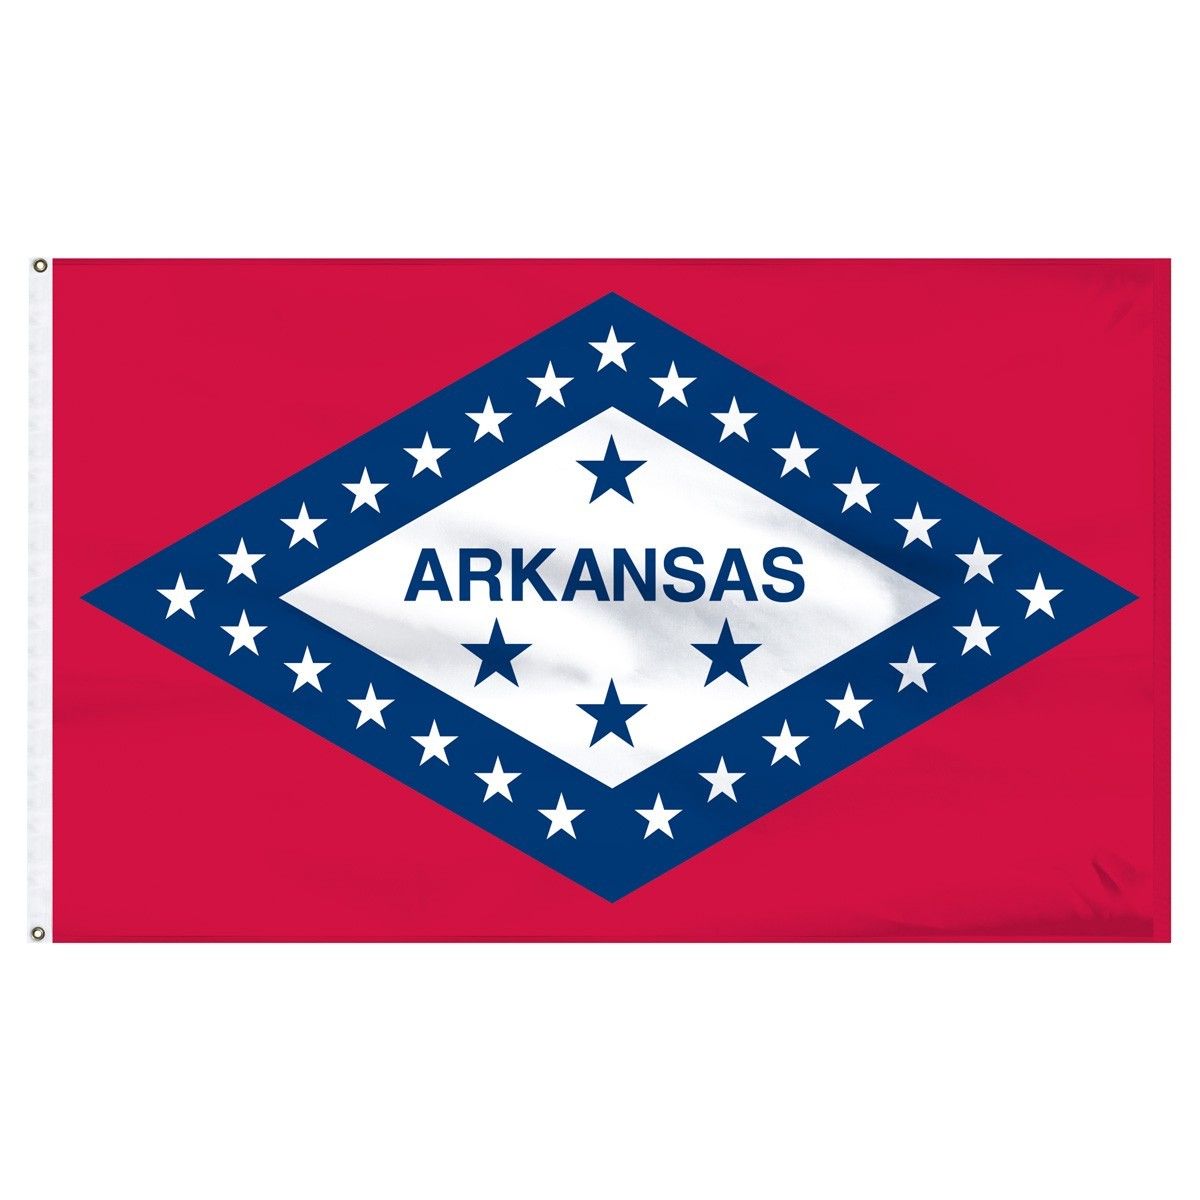 Arkansas  3' x 5' Outdoor Nylon Flag